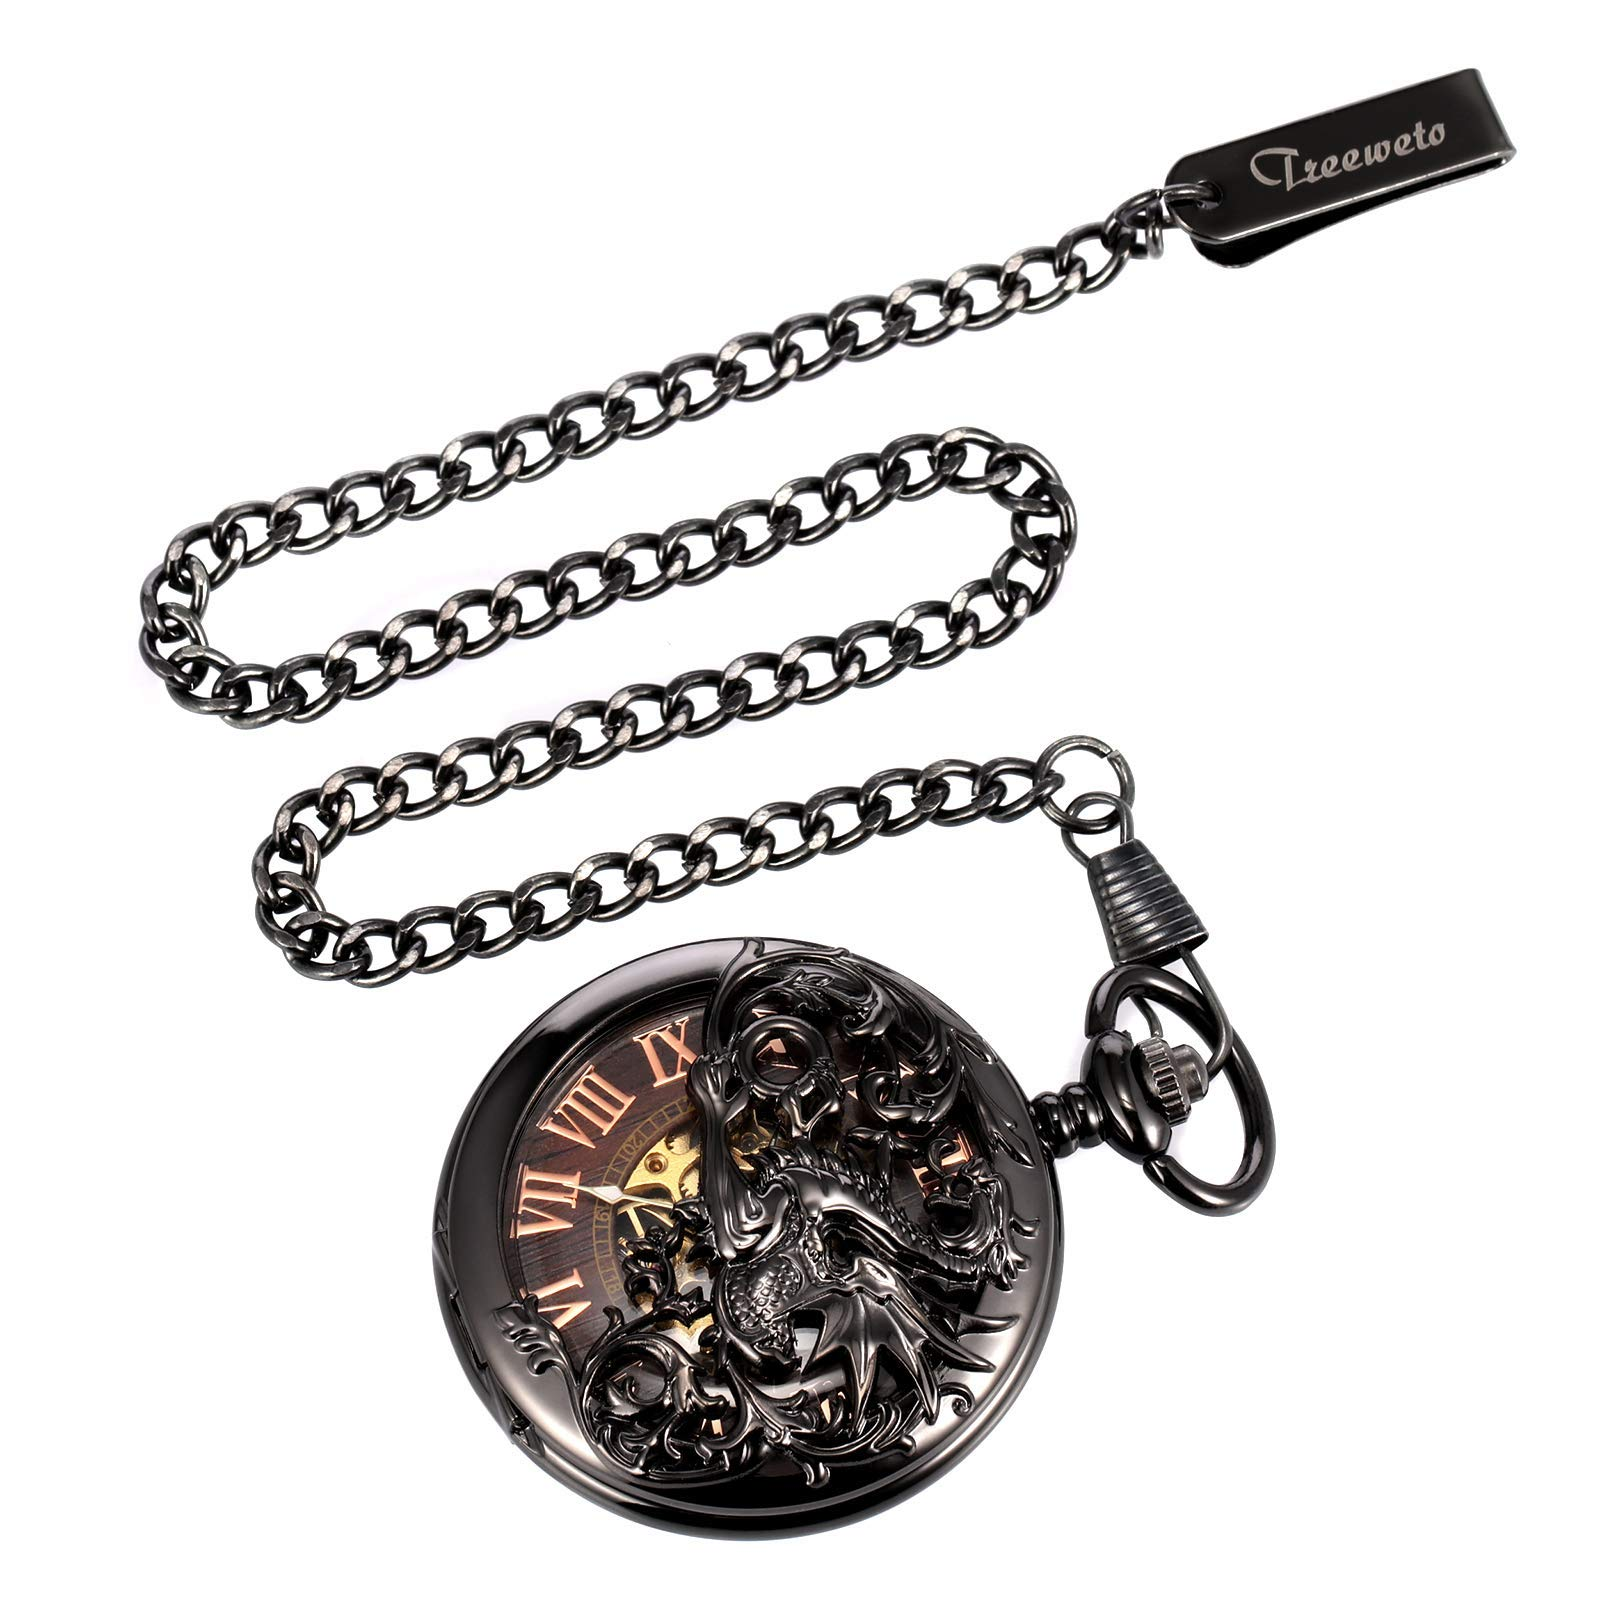 Treeweto Antique Dragon Mechanical Skeleton Pocket Watch with Chain by TREEWETO (Image #7)